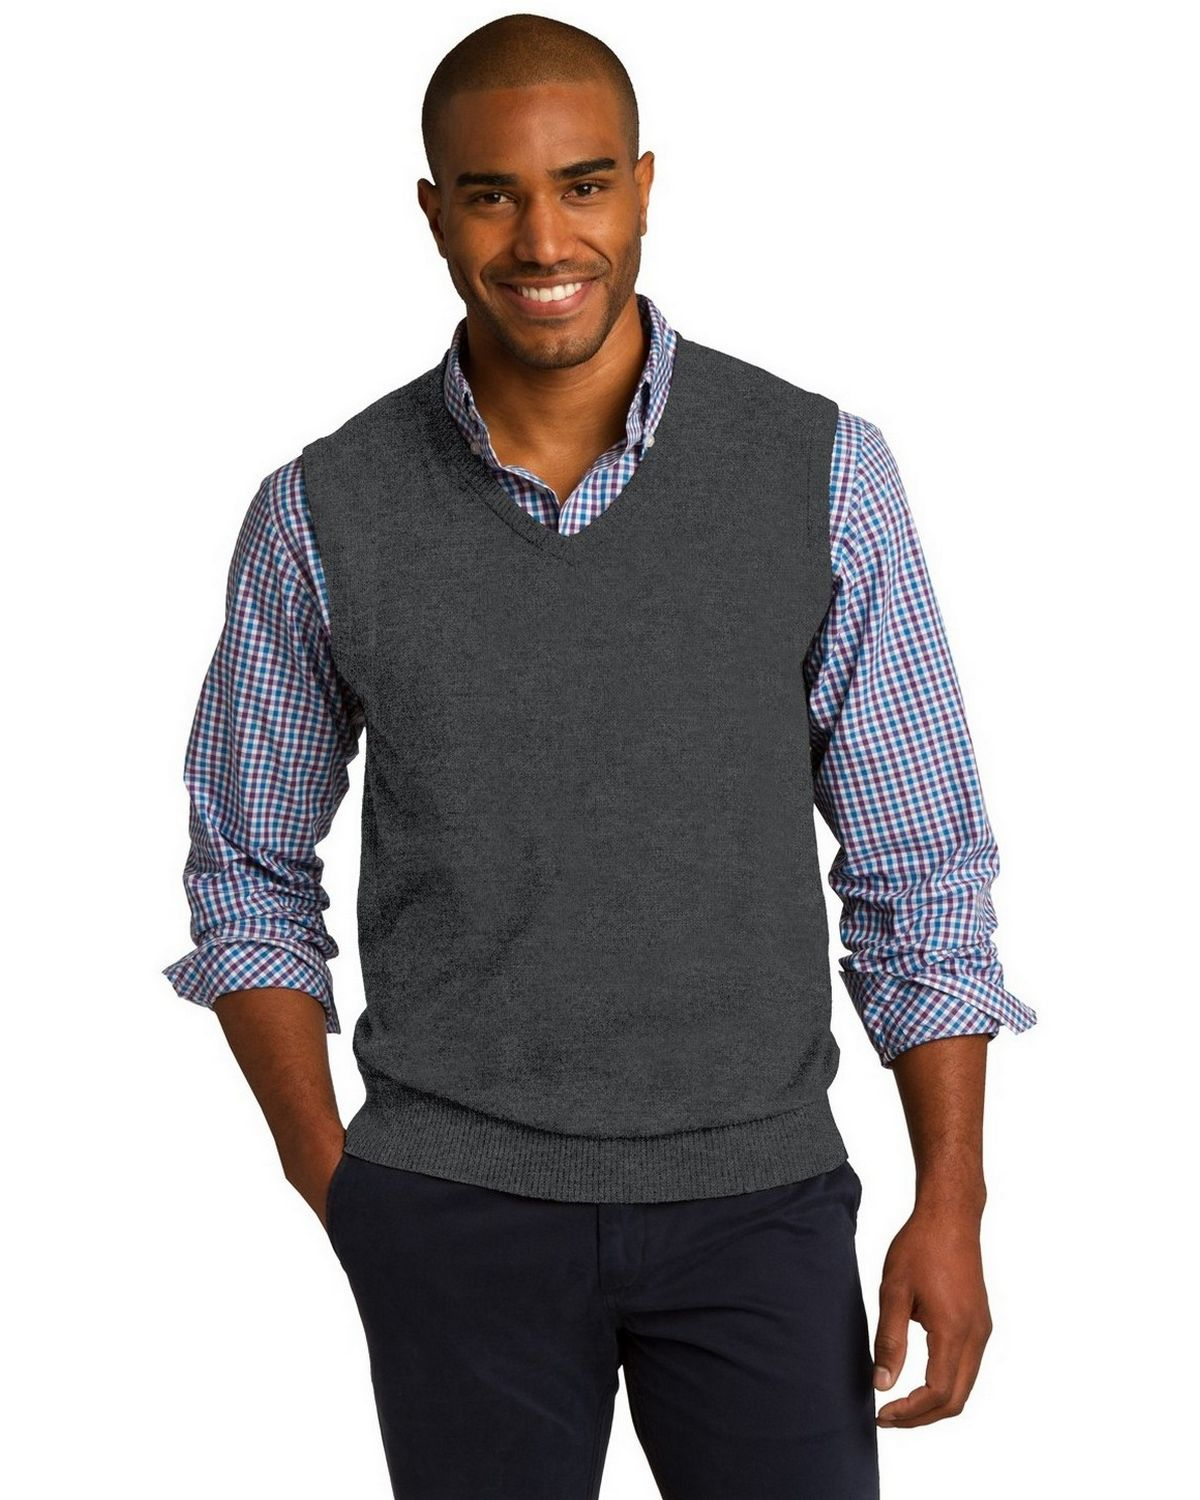 Port Authority SW286 Sweater Vest - Charcoal Heather - XS SW286